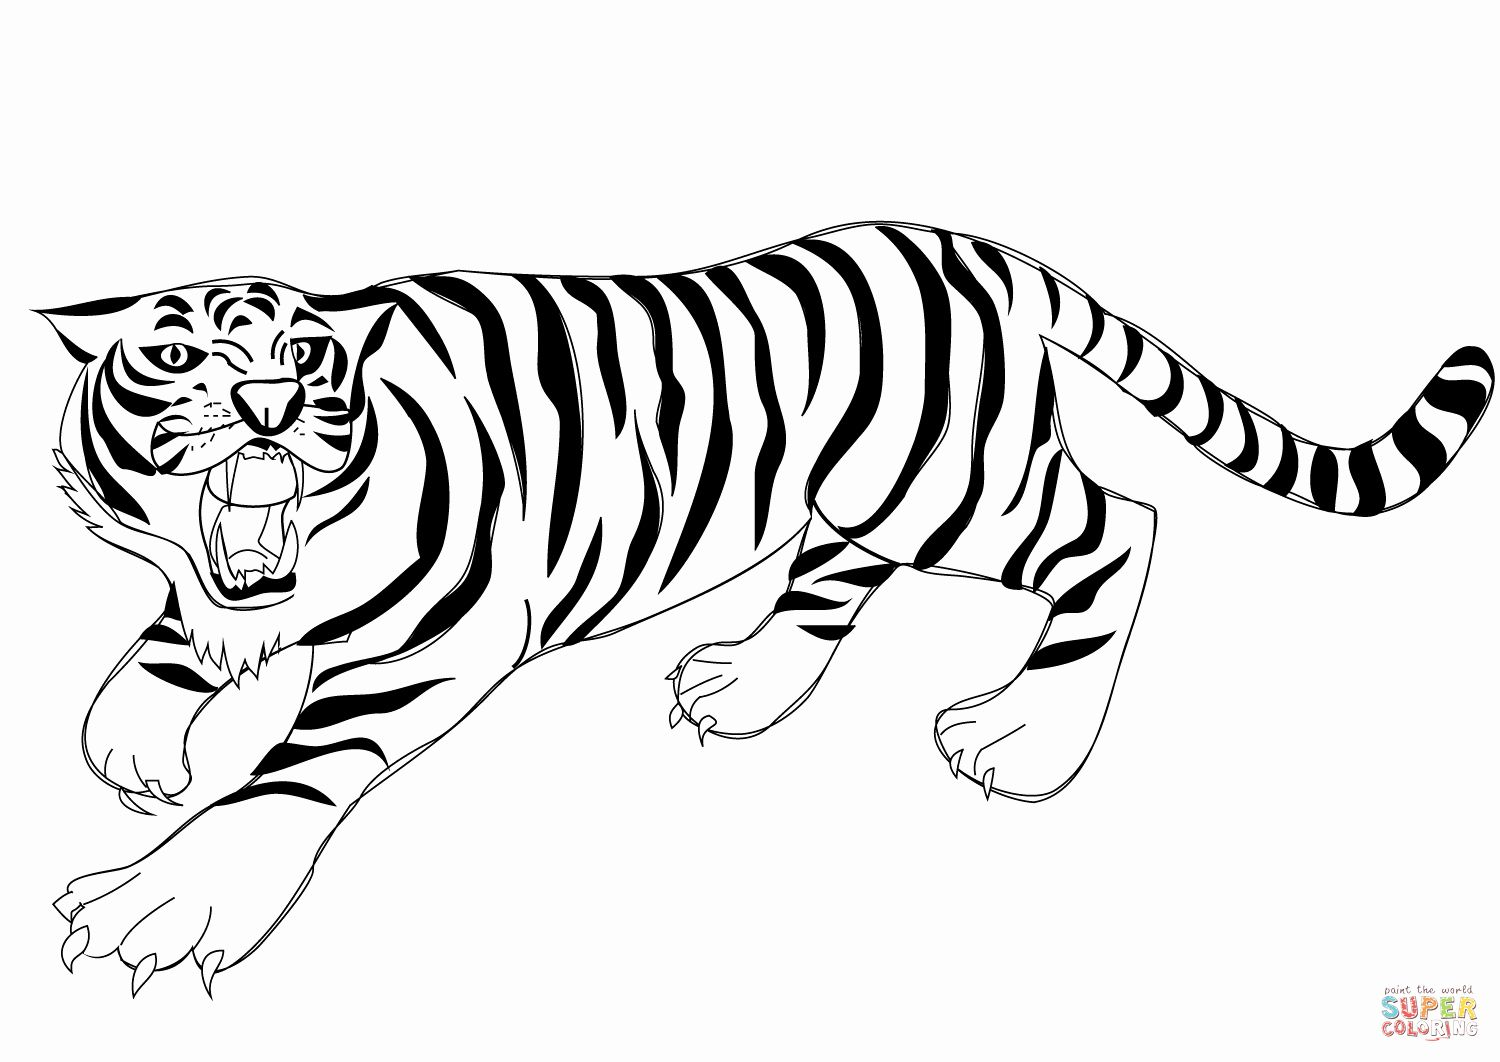 Coloring Pages Of Tigers Awesome Easy Tiger Coloring Pages In 2020 Tiger Pictures Coloring Pages Animal Coloring Pages